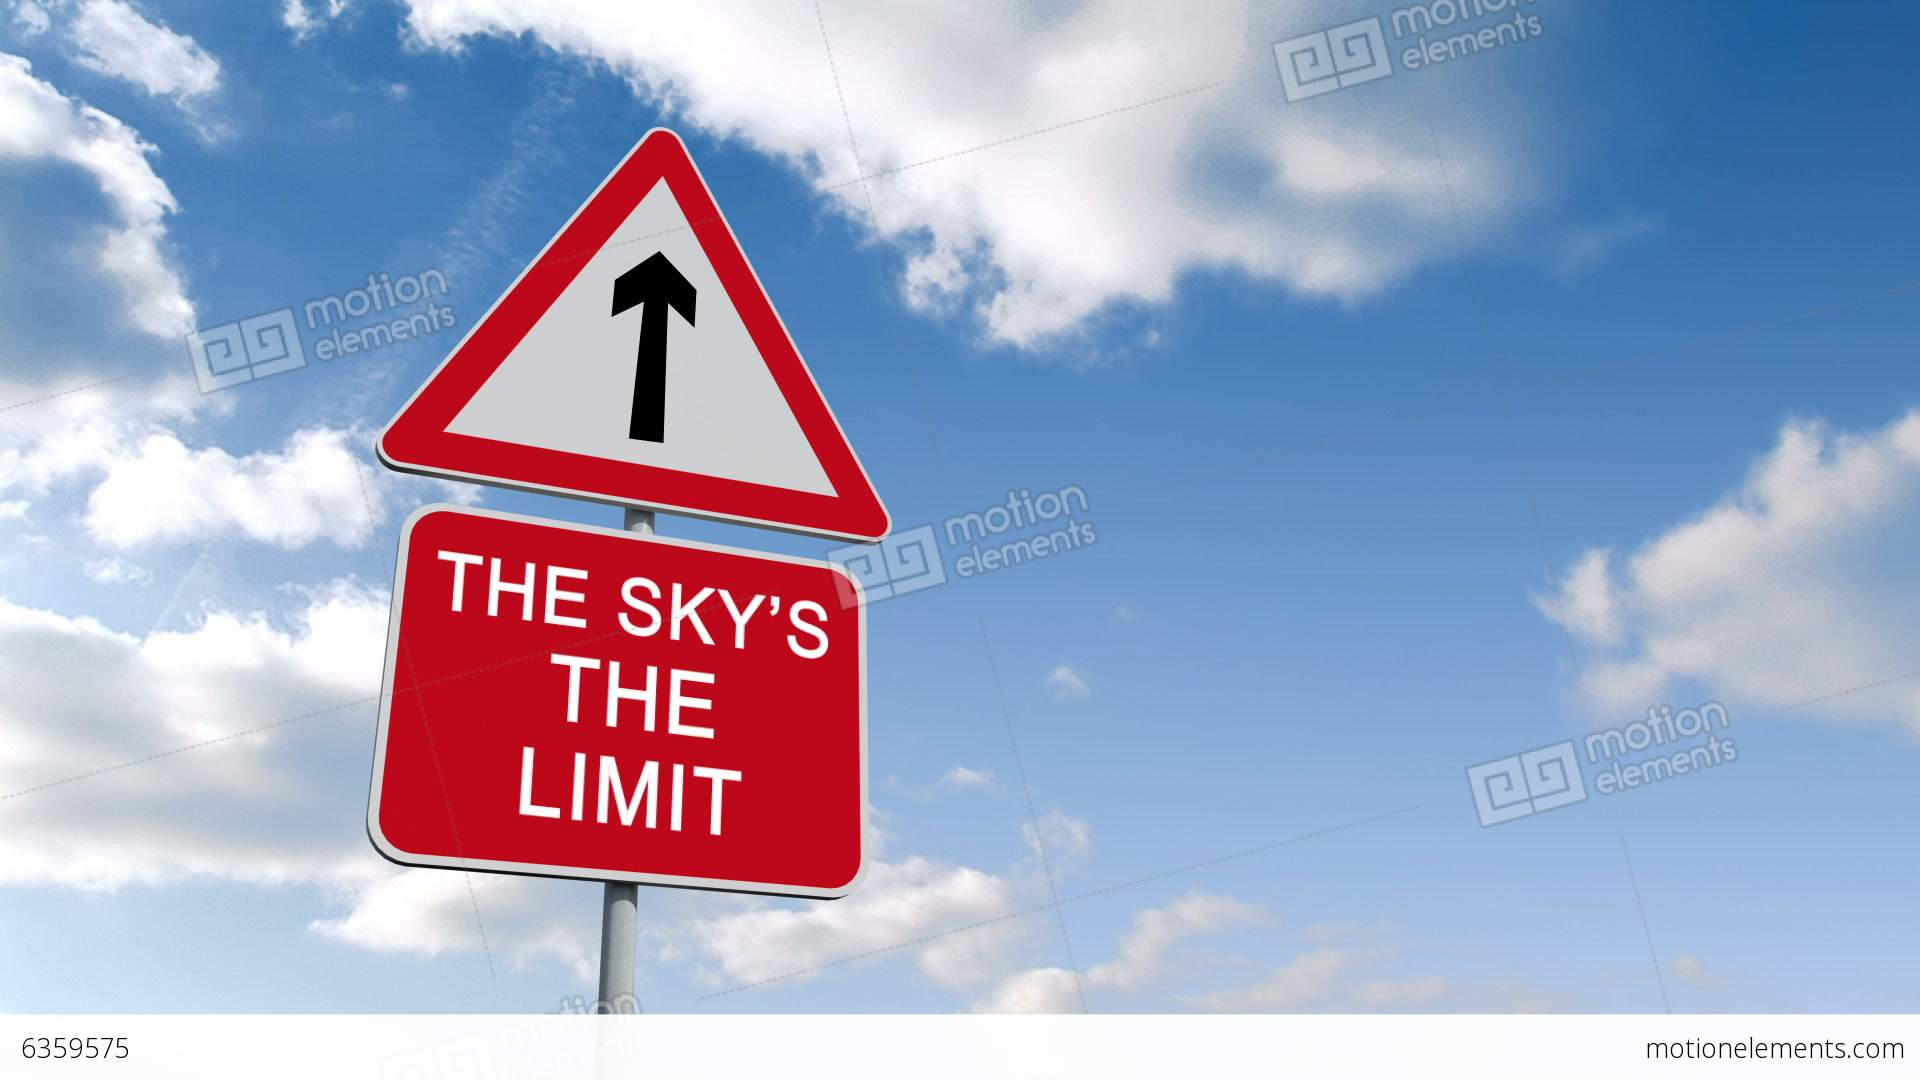 Imlorganisationse Wörterbuch The Skys The Limit Englisch